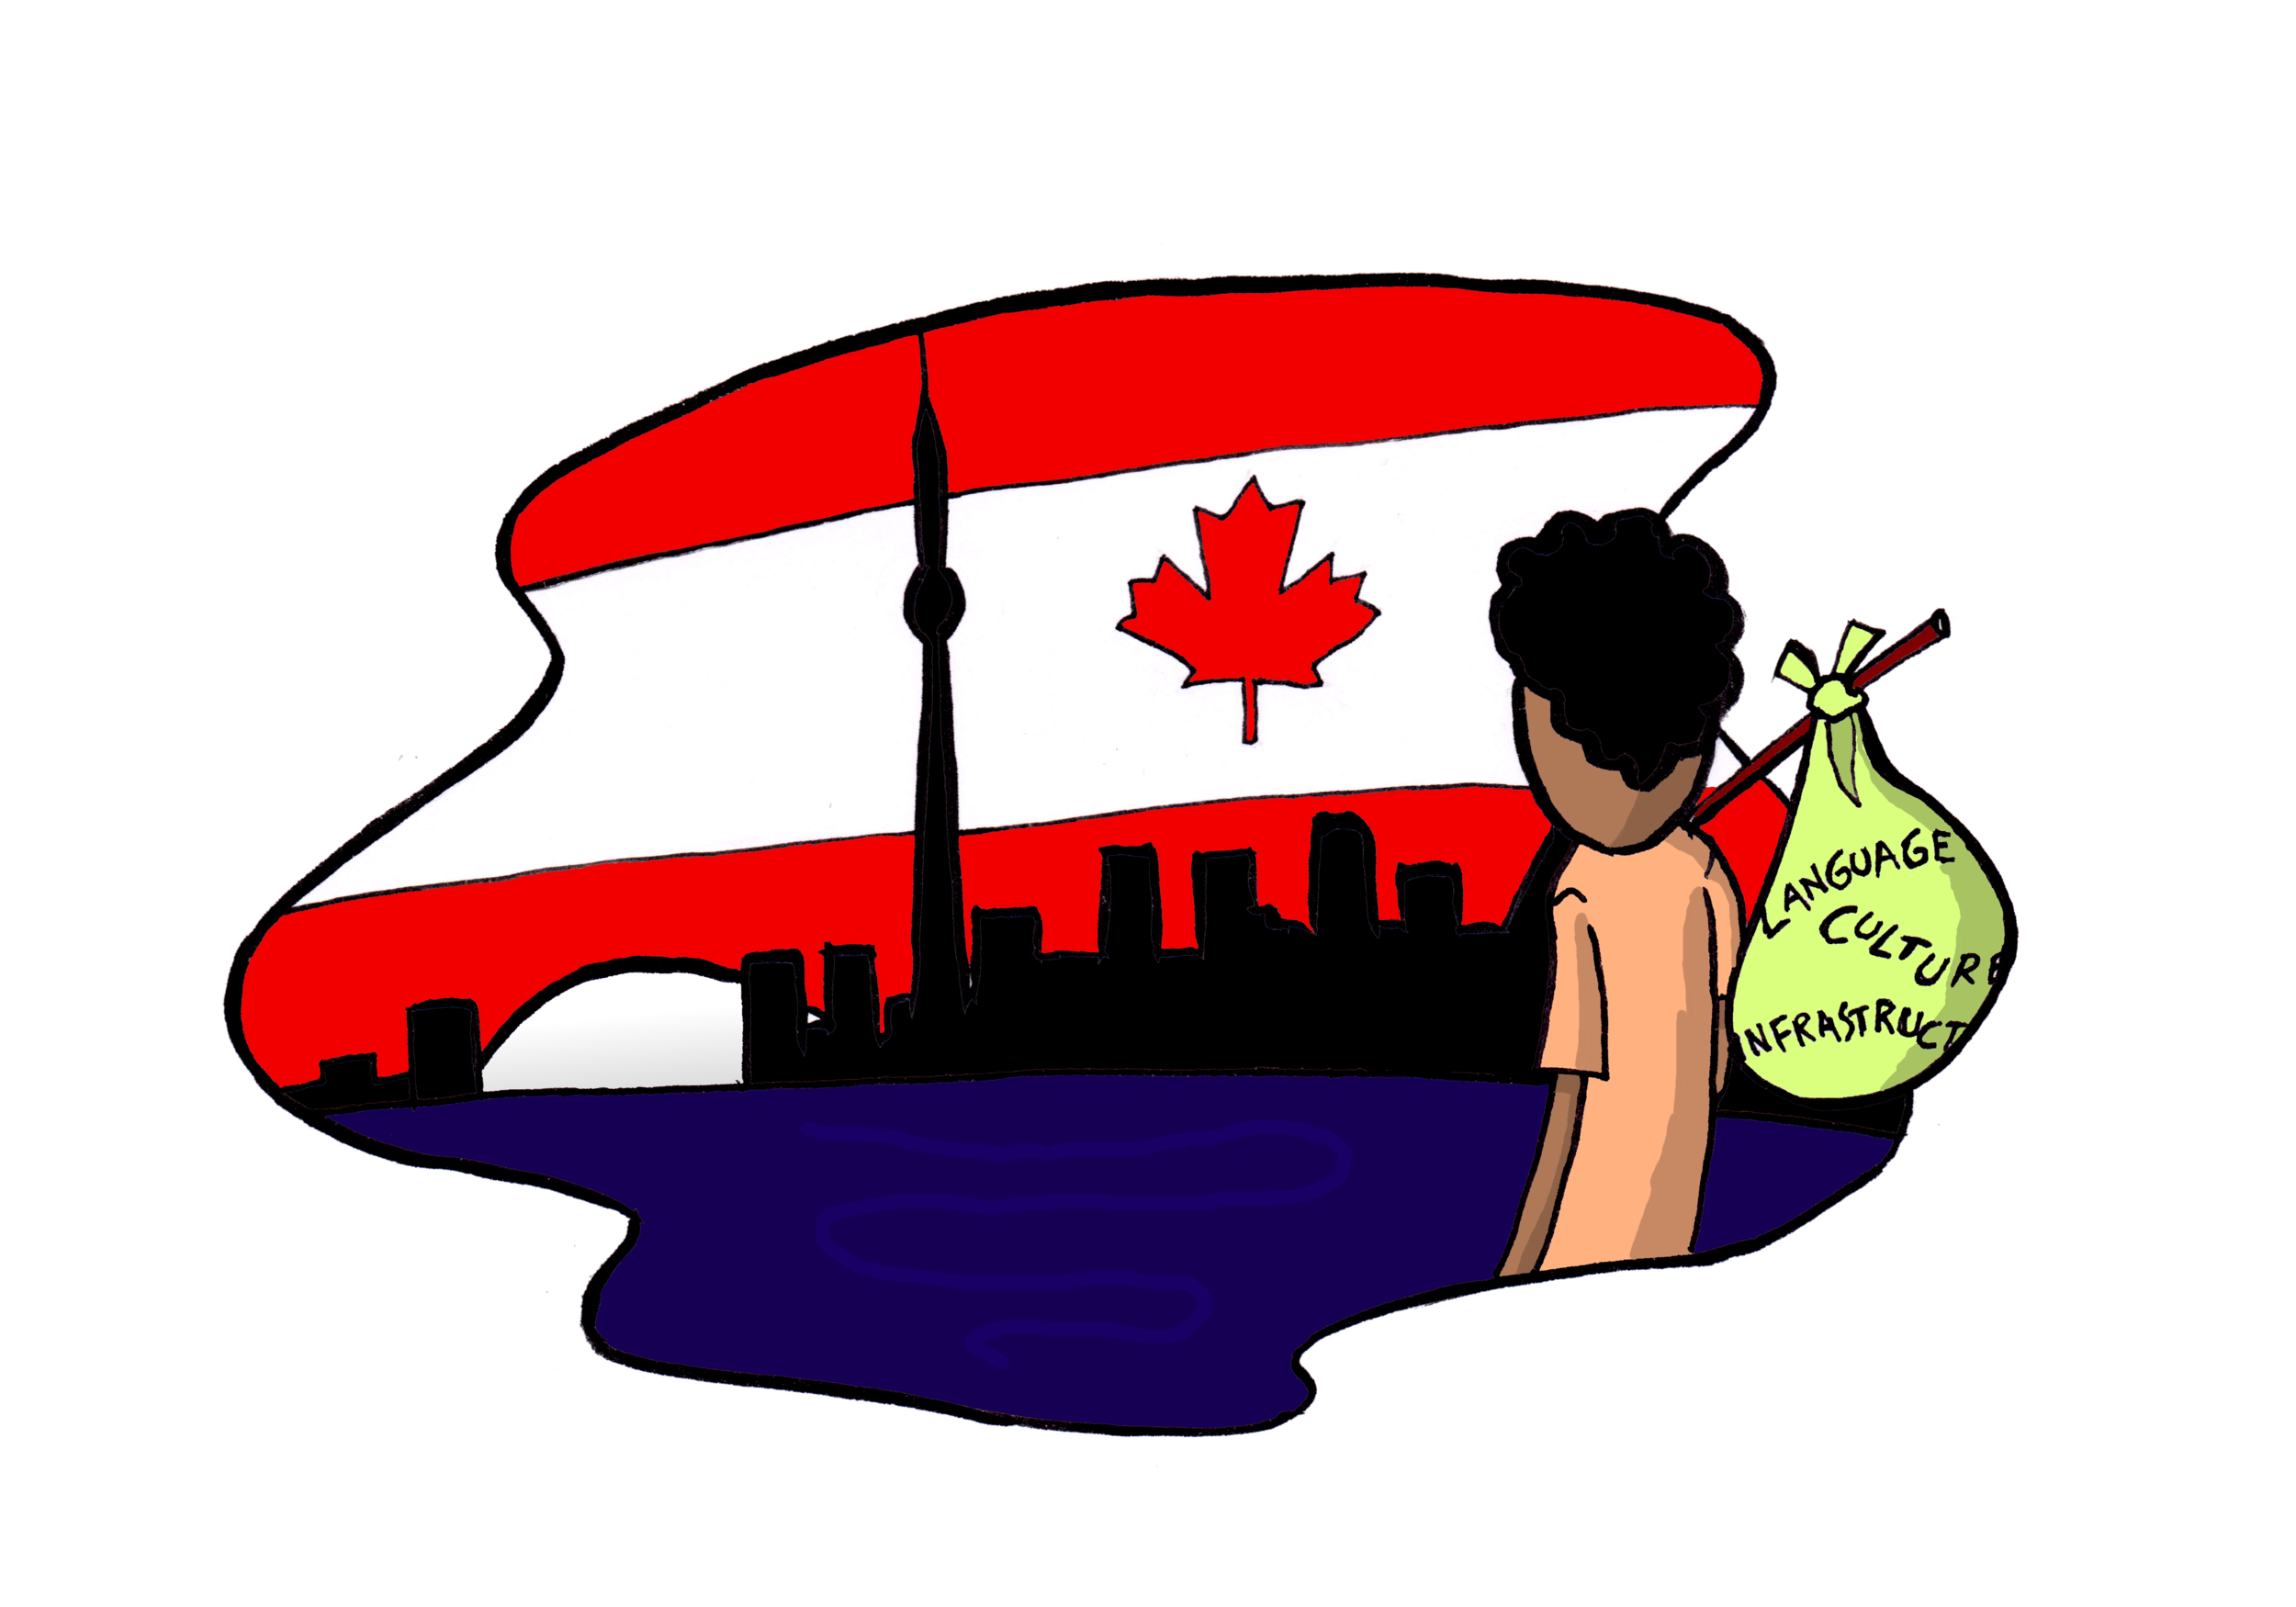 Future clipart cartoon. Collection of free actualities